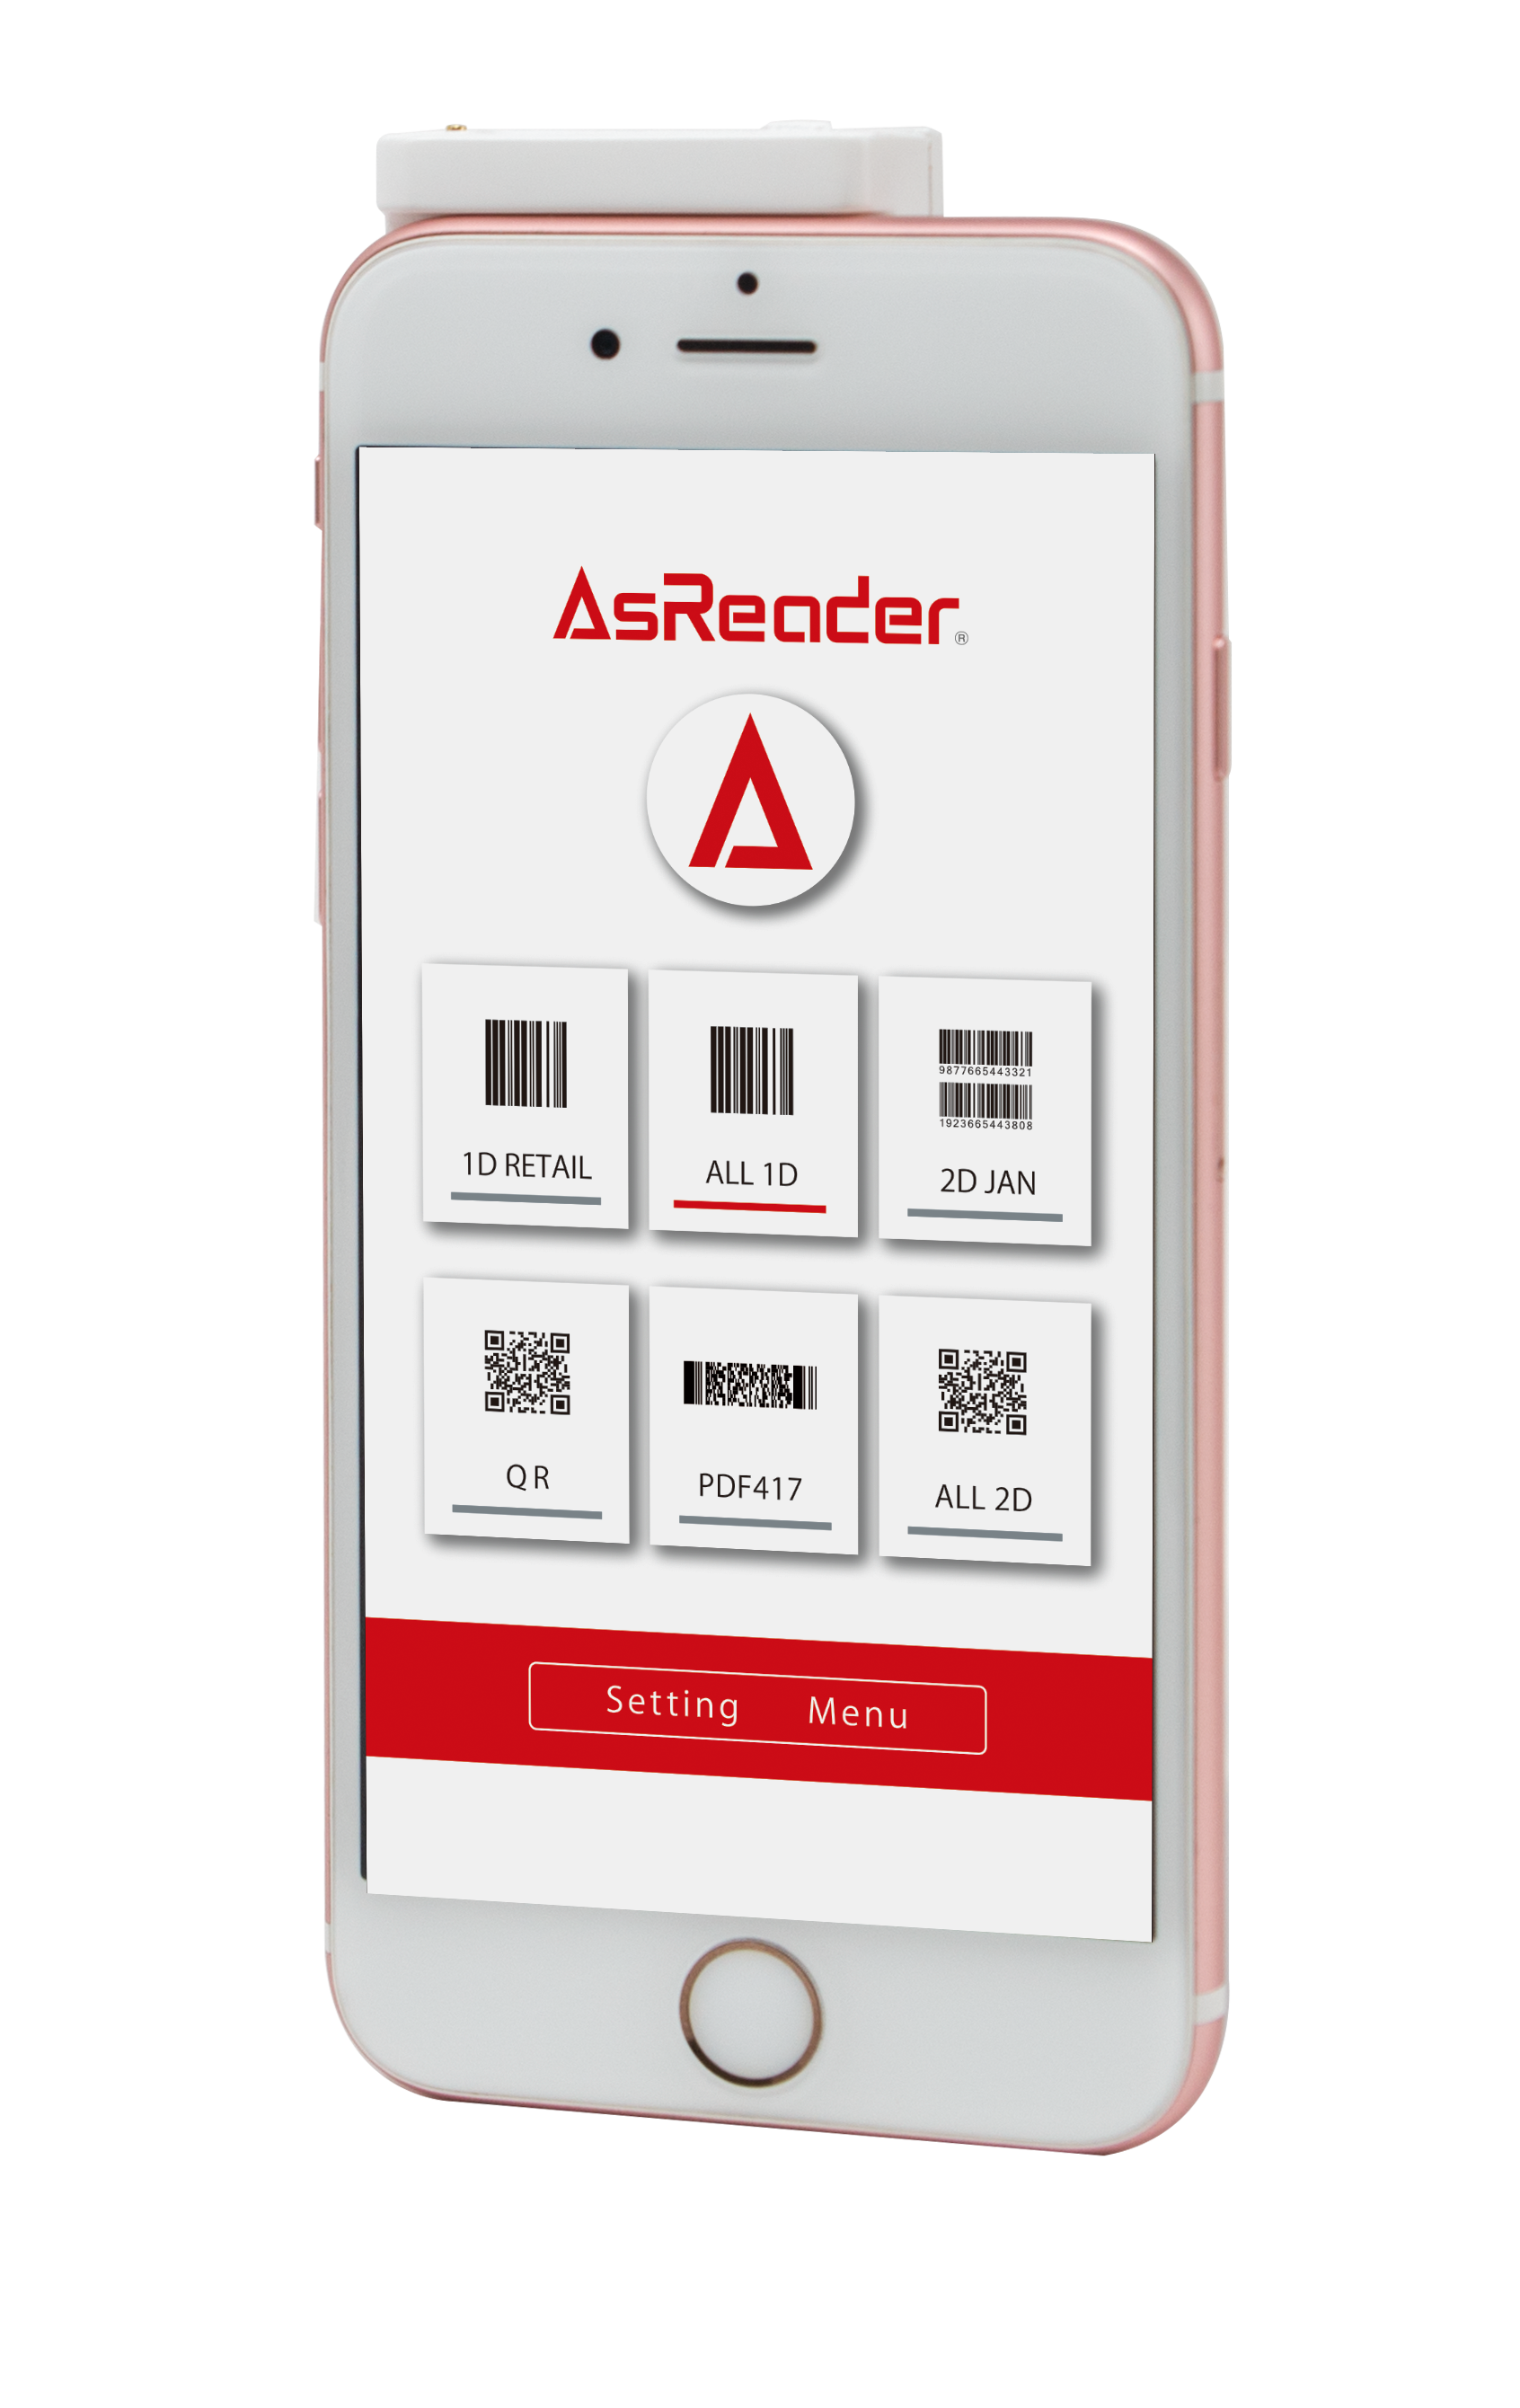 AsReader, Inc  Releases their Newest Product,